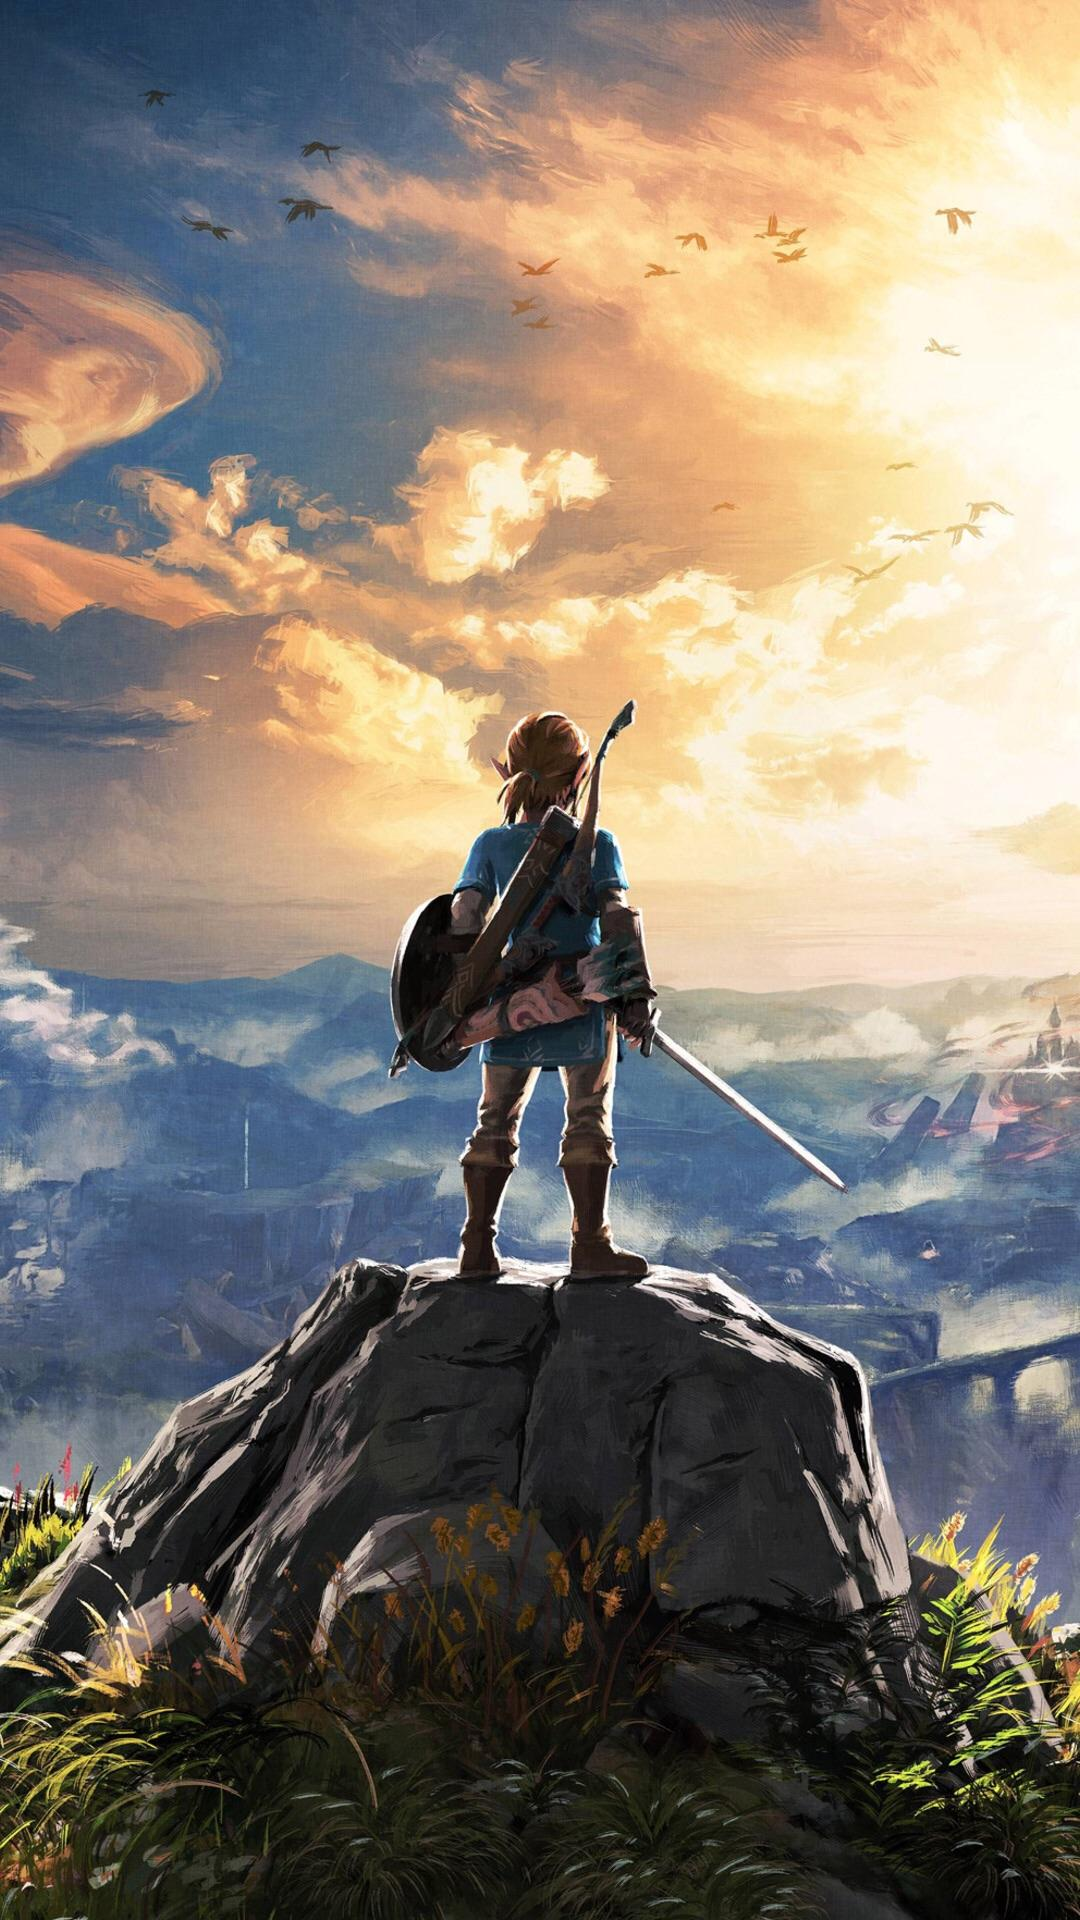 Breath-of-the-Wild-1080x1920-Need-iPhone-S-Plus-Background-for-IPhoneSPlus-Fol-wallpaper-wp3603703